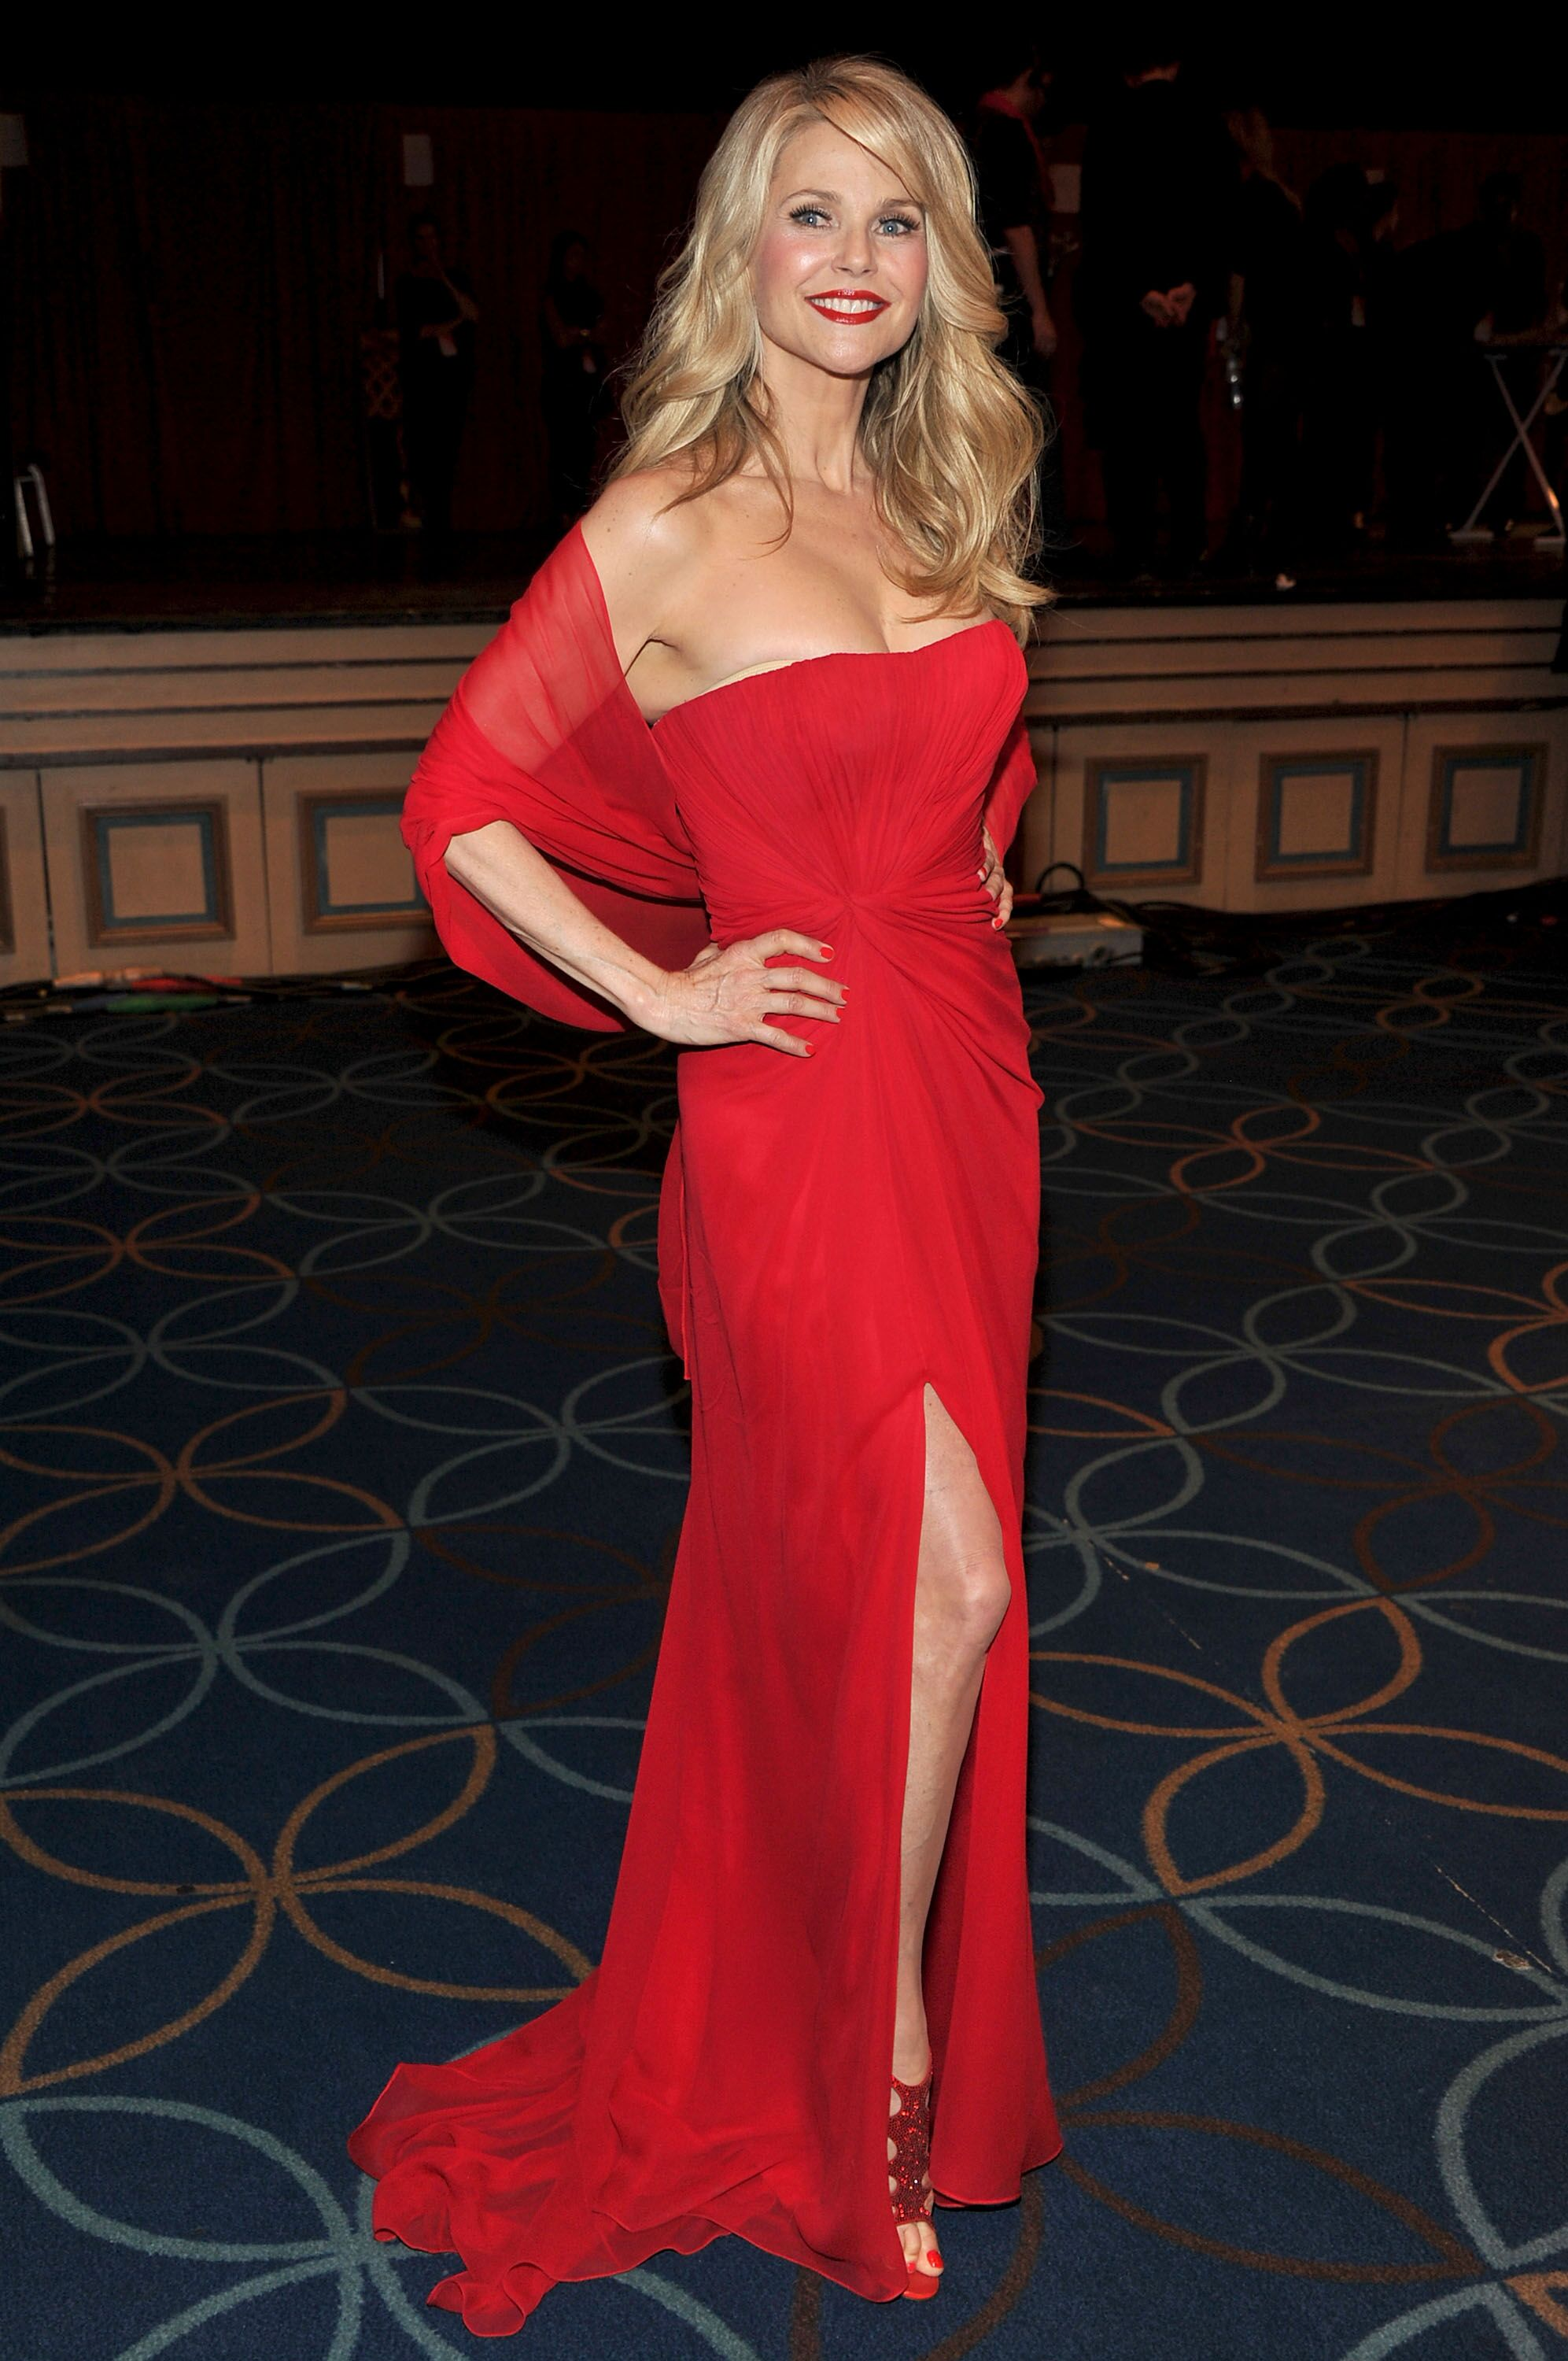 Christie Brinkley at The Heart Truth's Red Dress Collection Fashion Show on February 8, 2012, in New York City | Photo: Theo Wargo/Getty Images